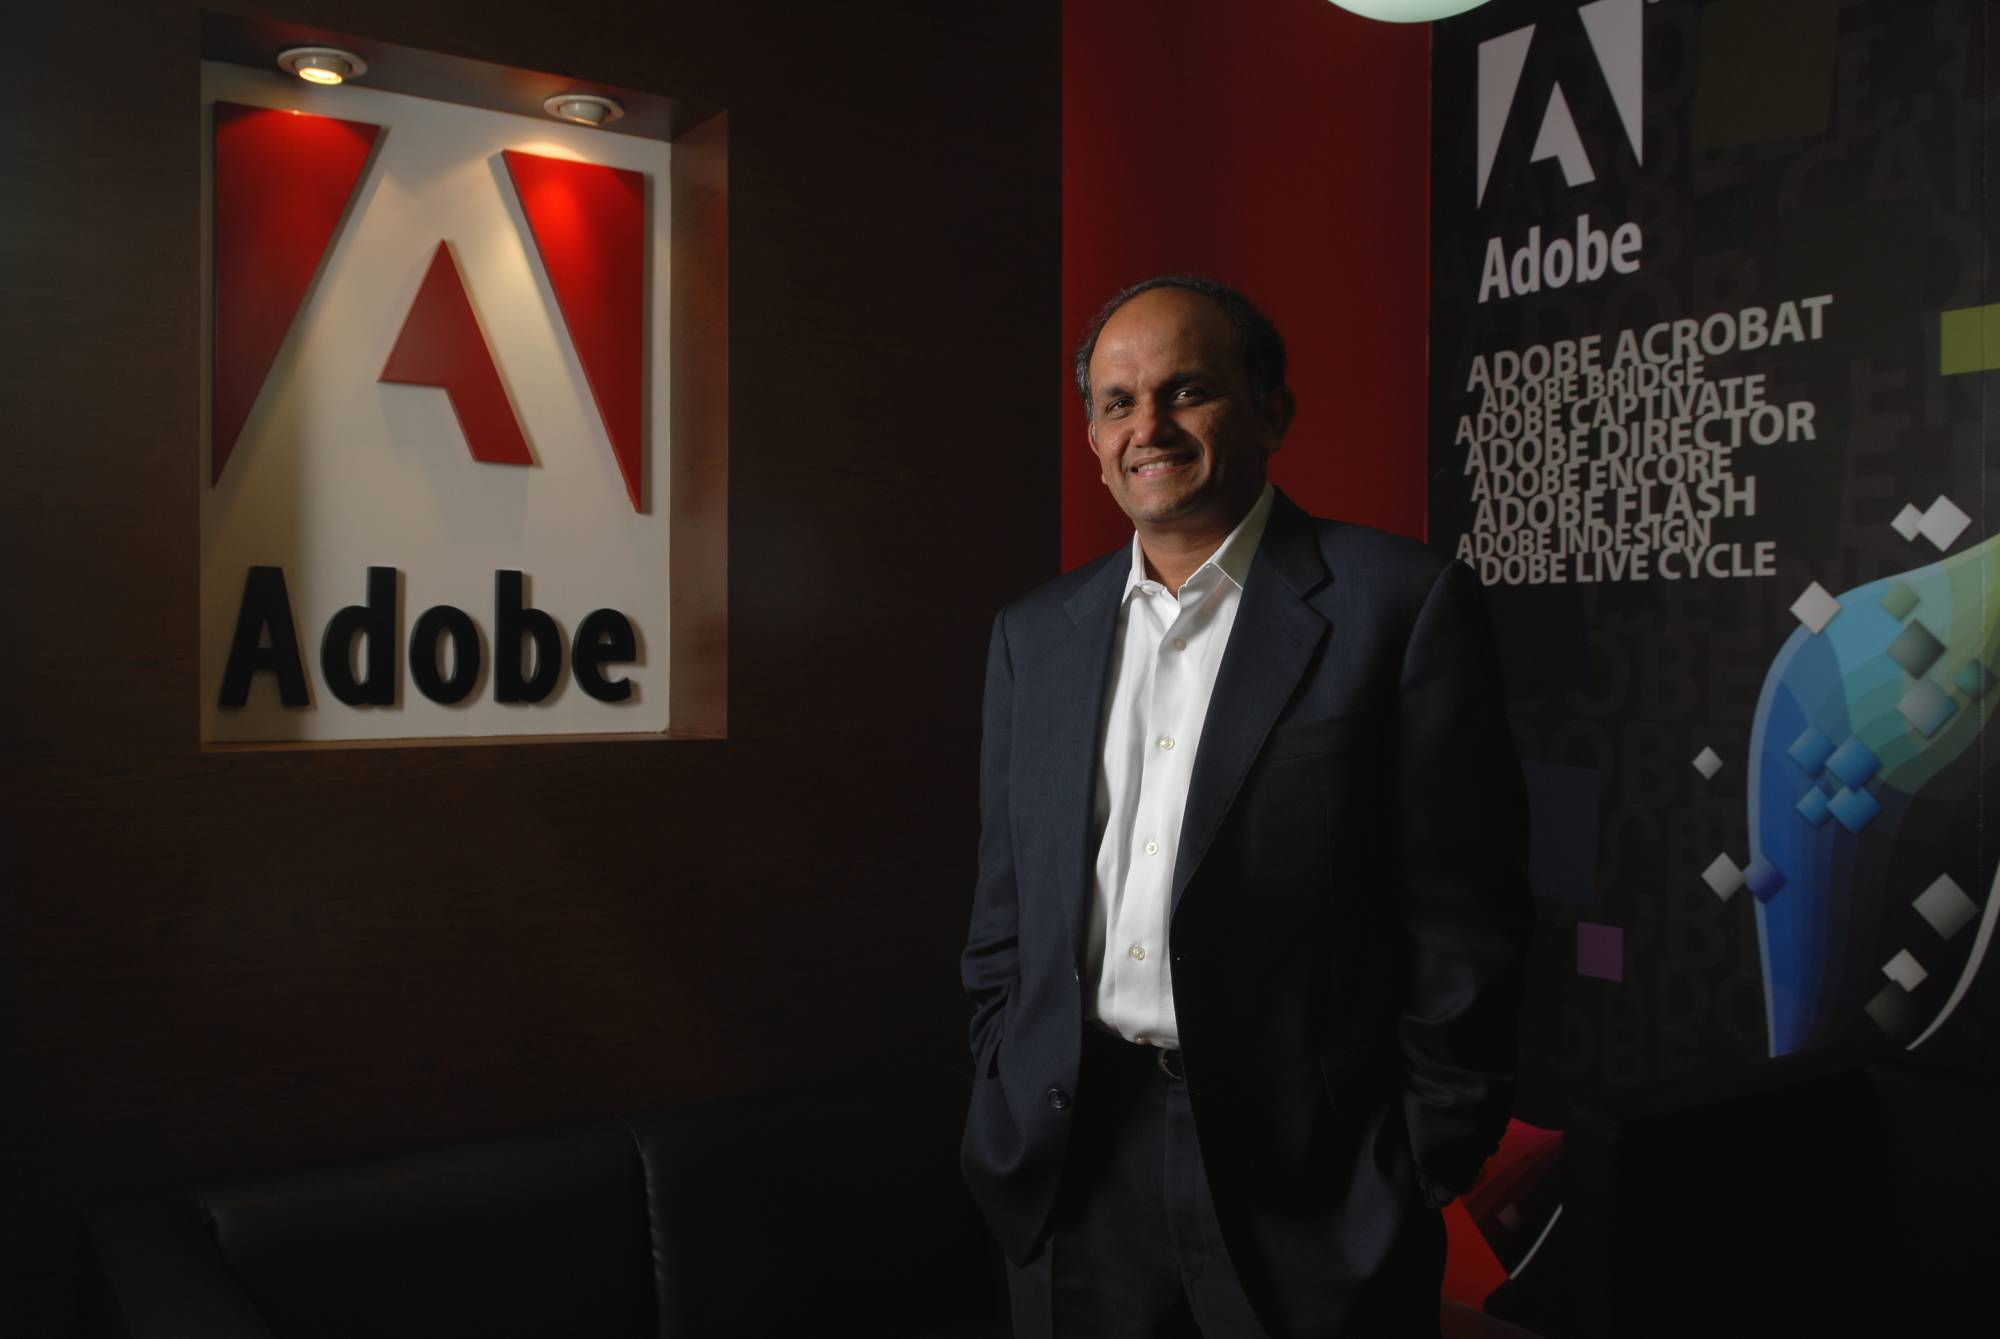 Adobe plans to buy Marketo for $4.75 billion.